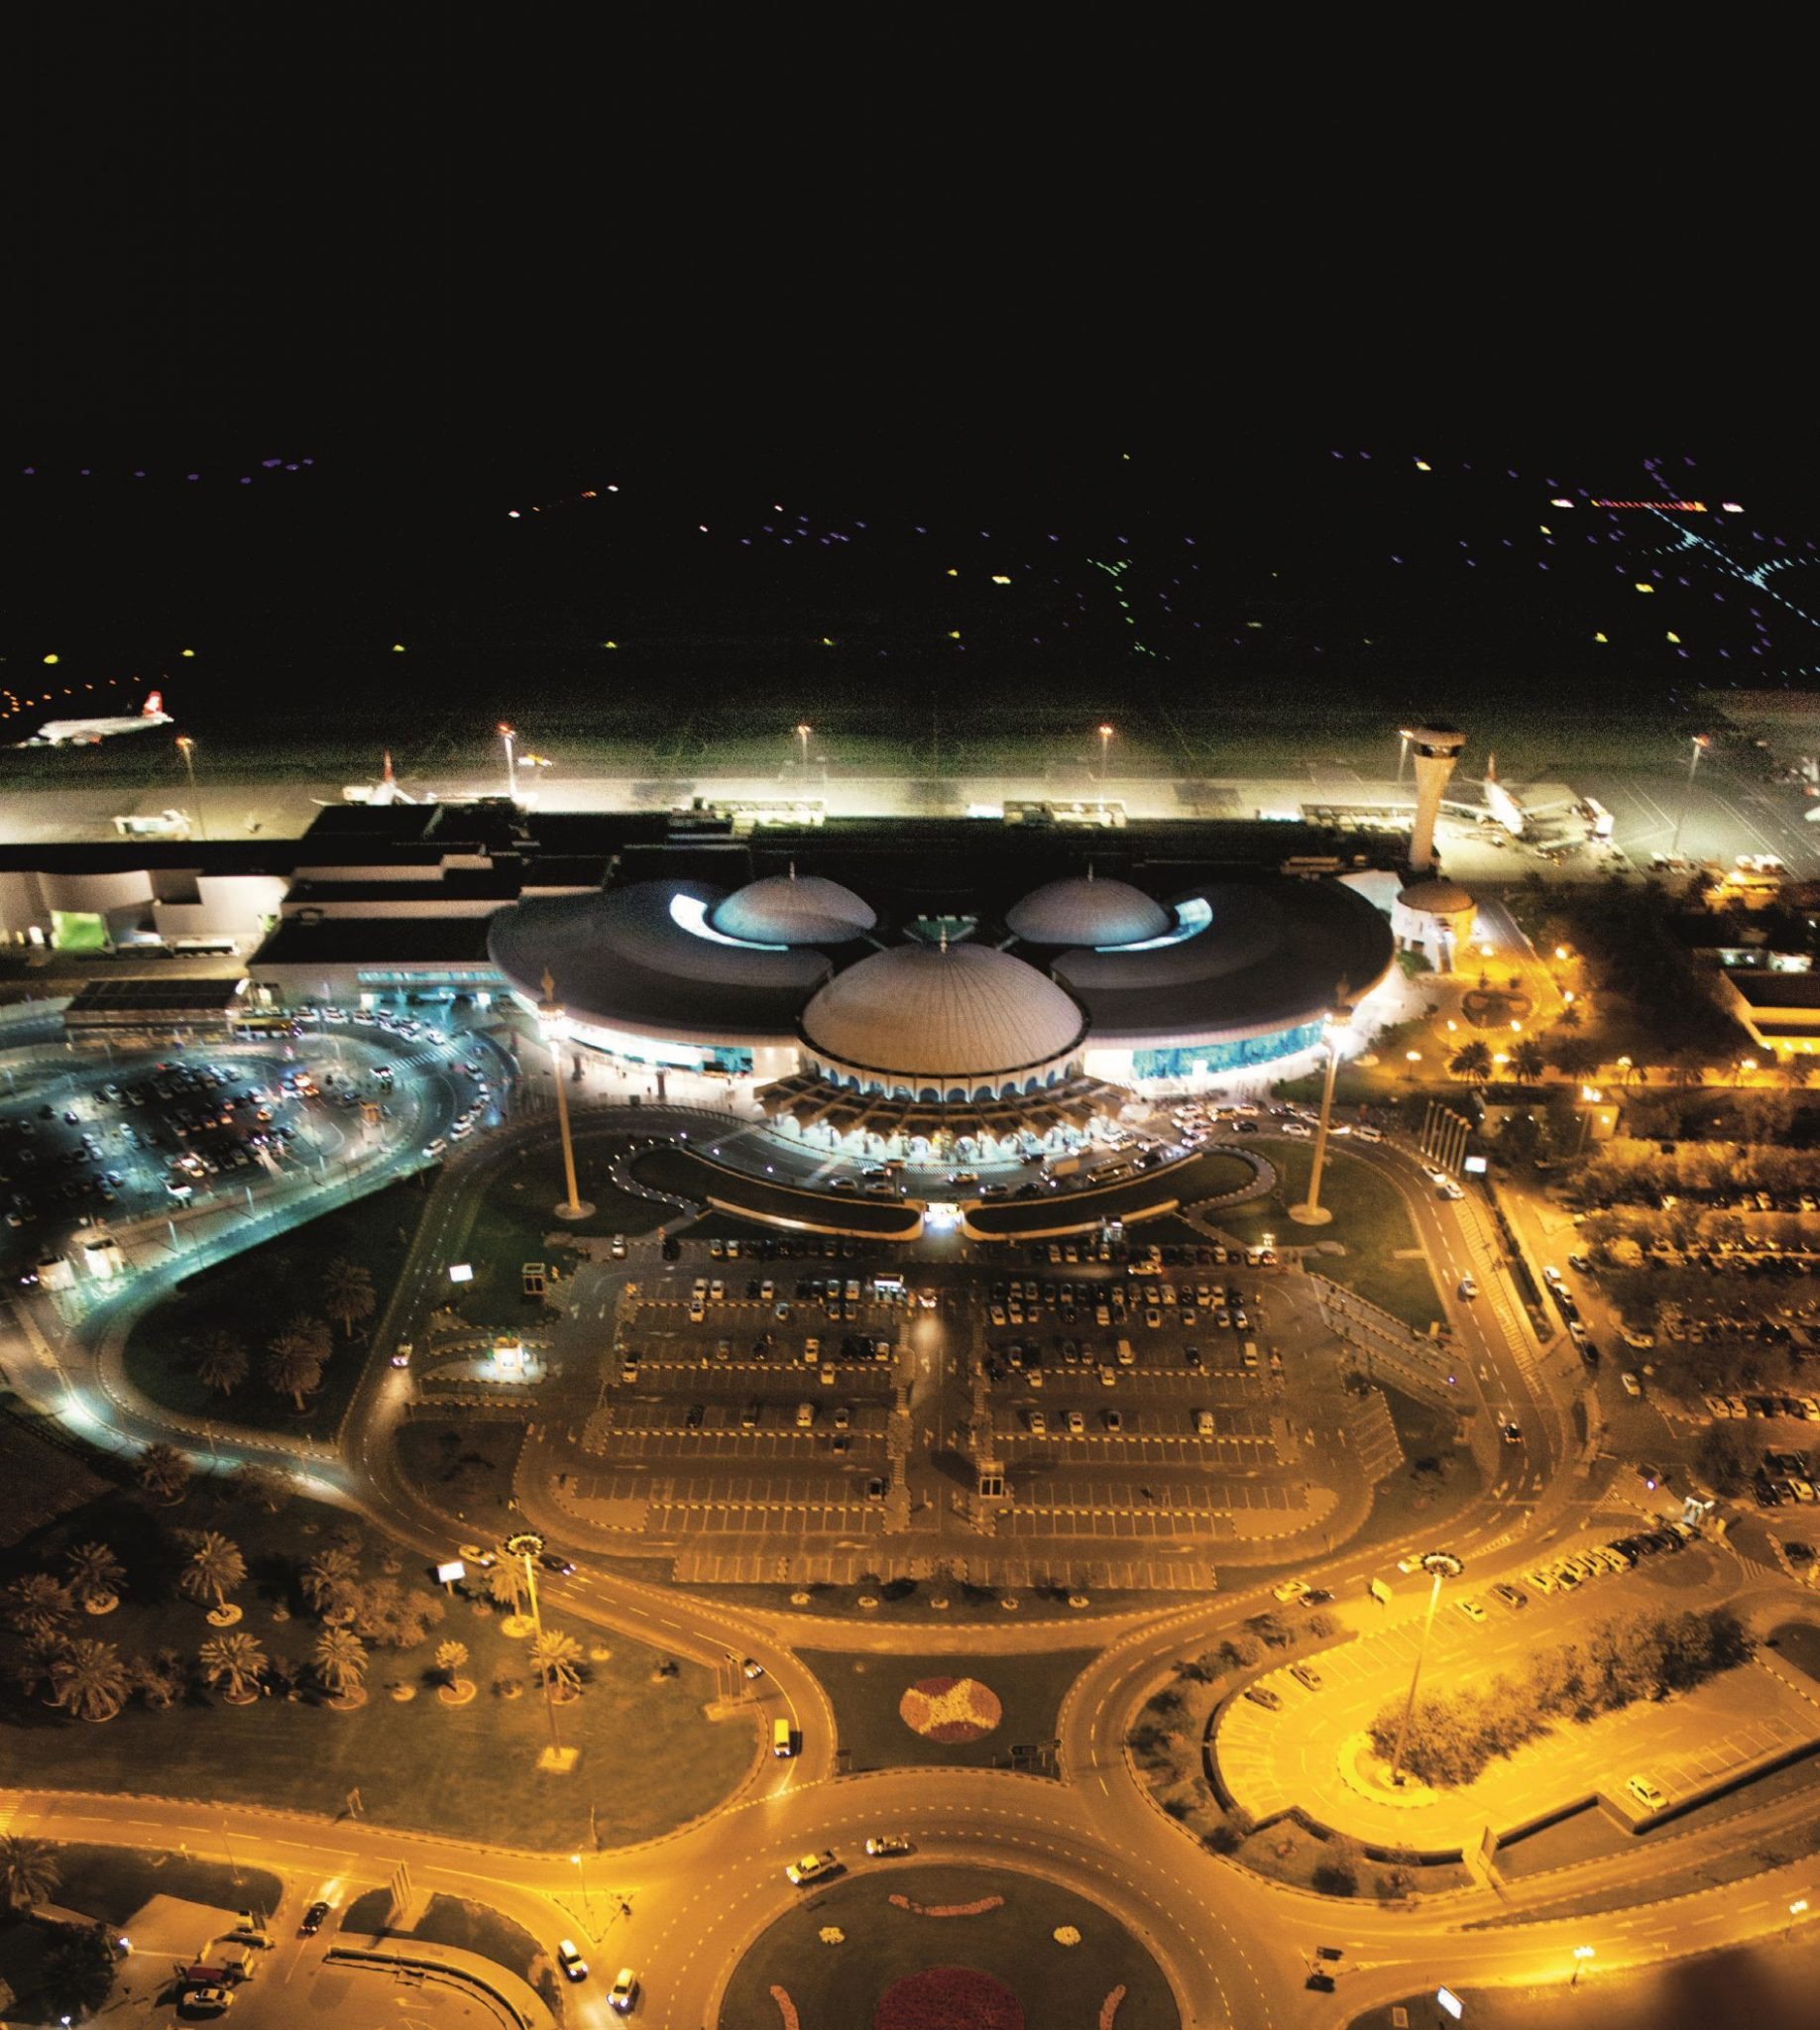 Sharjah Airport night shot